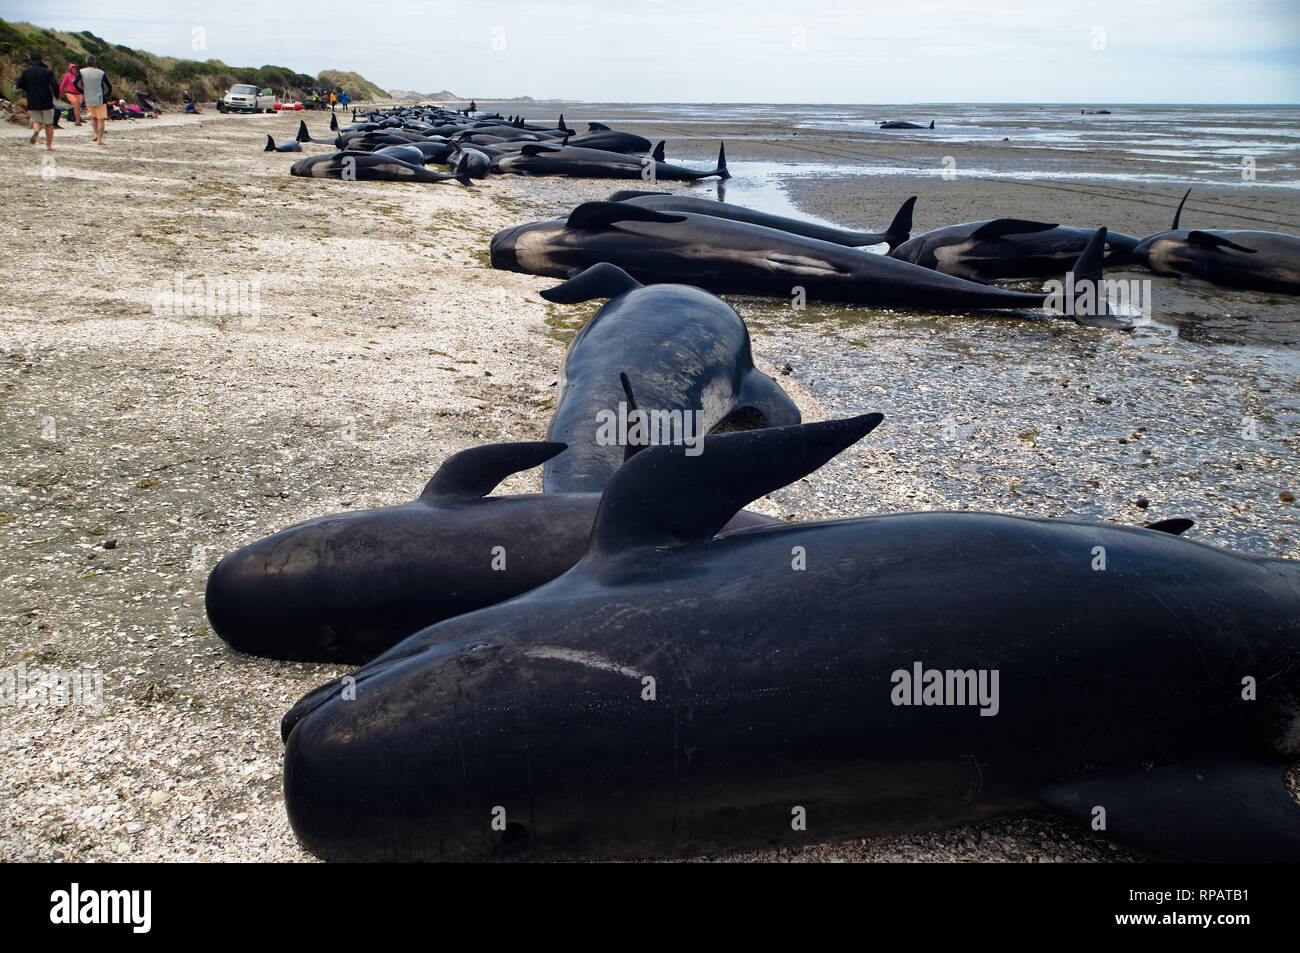 Despite rescuers best attempts many whales often die in mass strandings at Farewell Spit in New Zealand - Stock Image